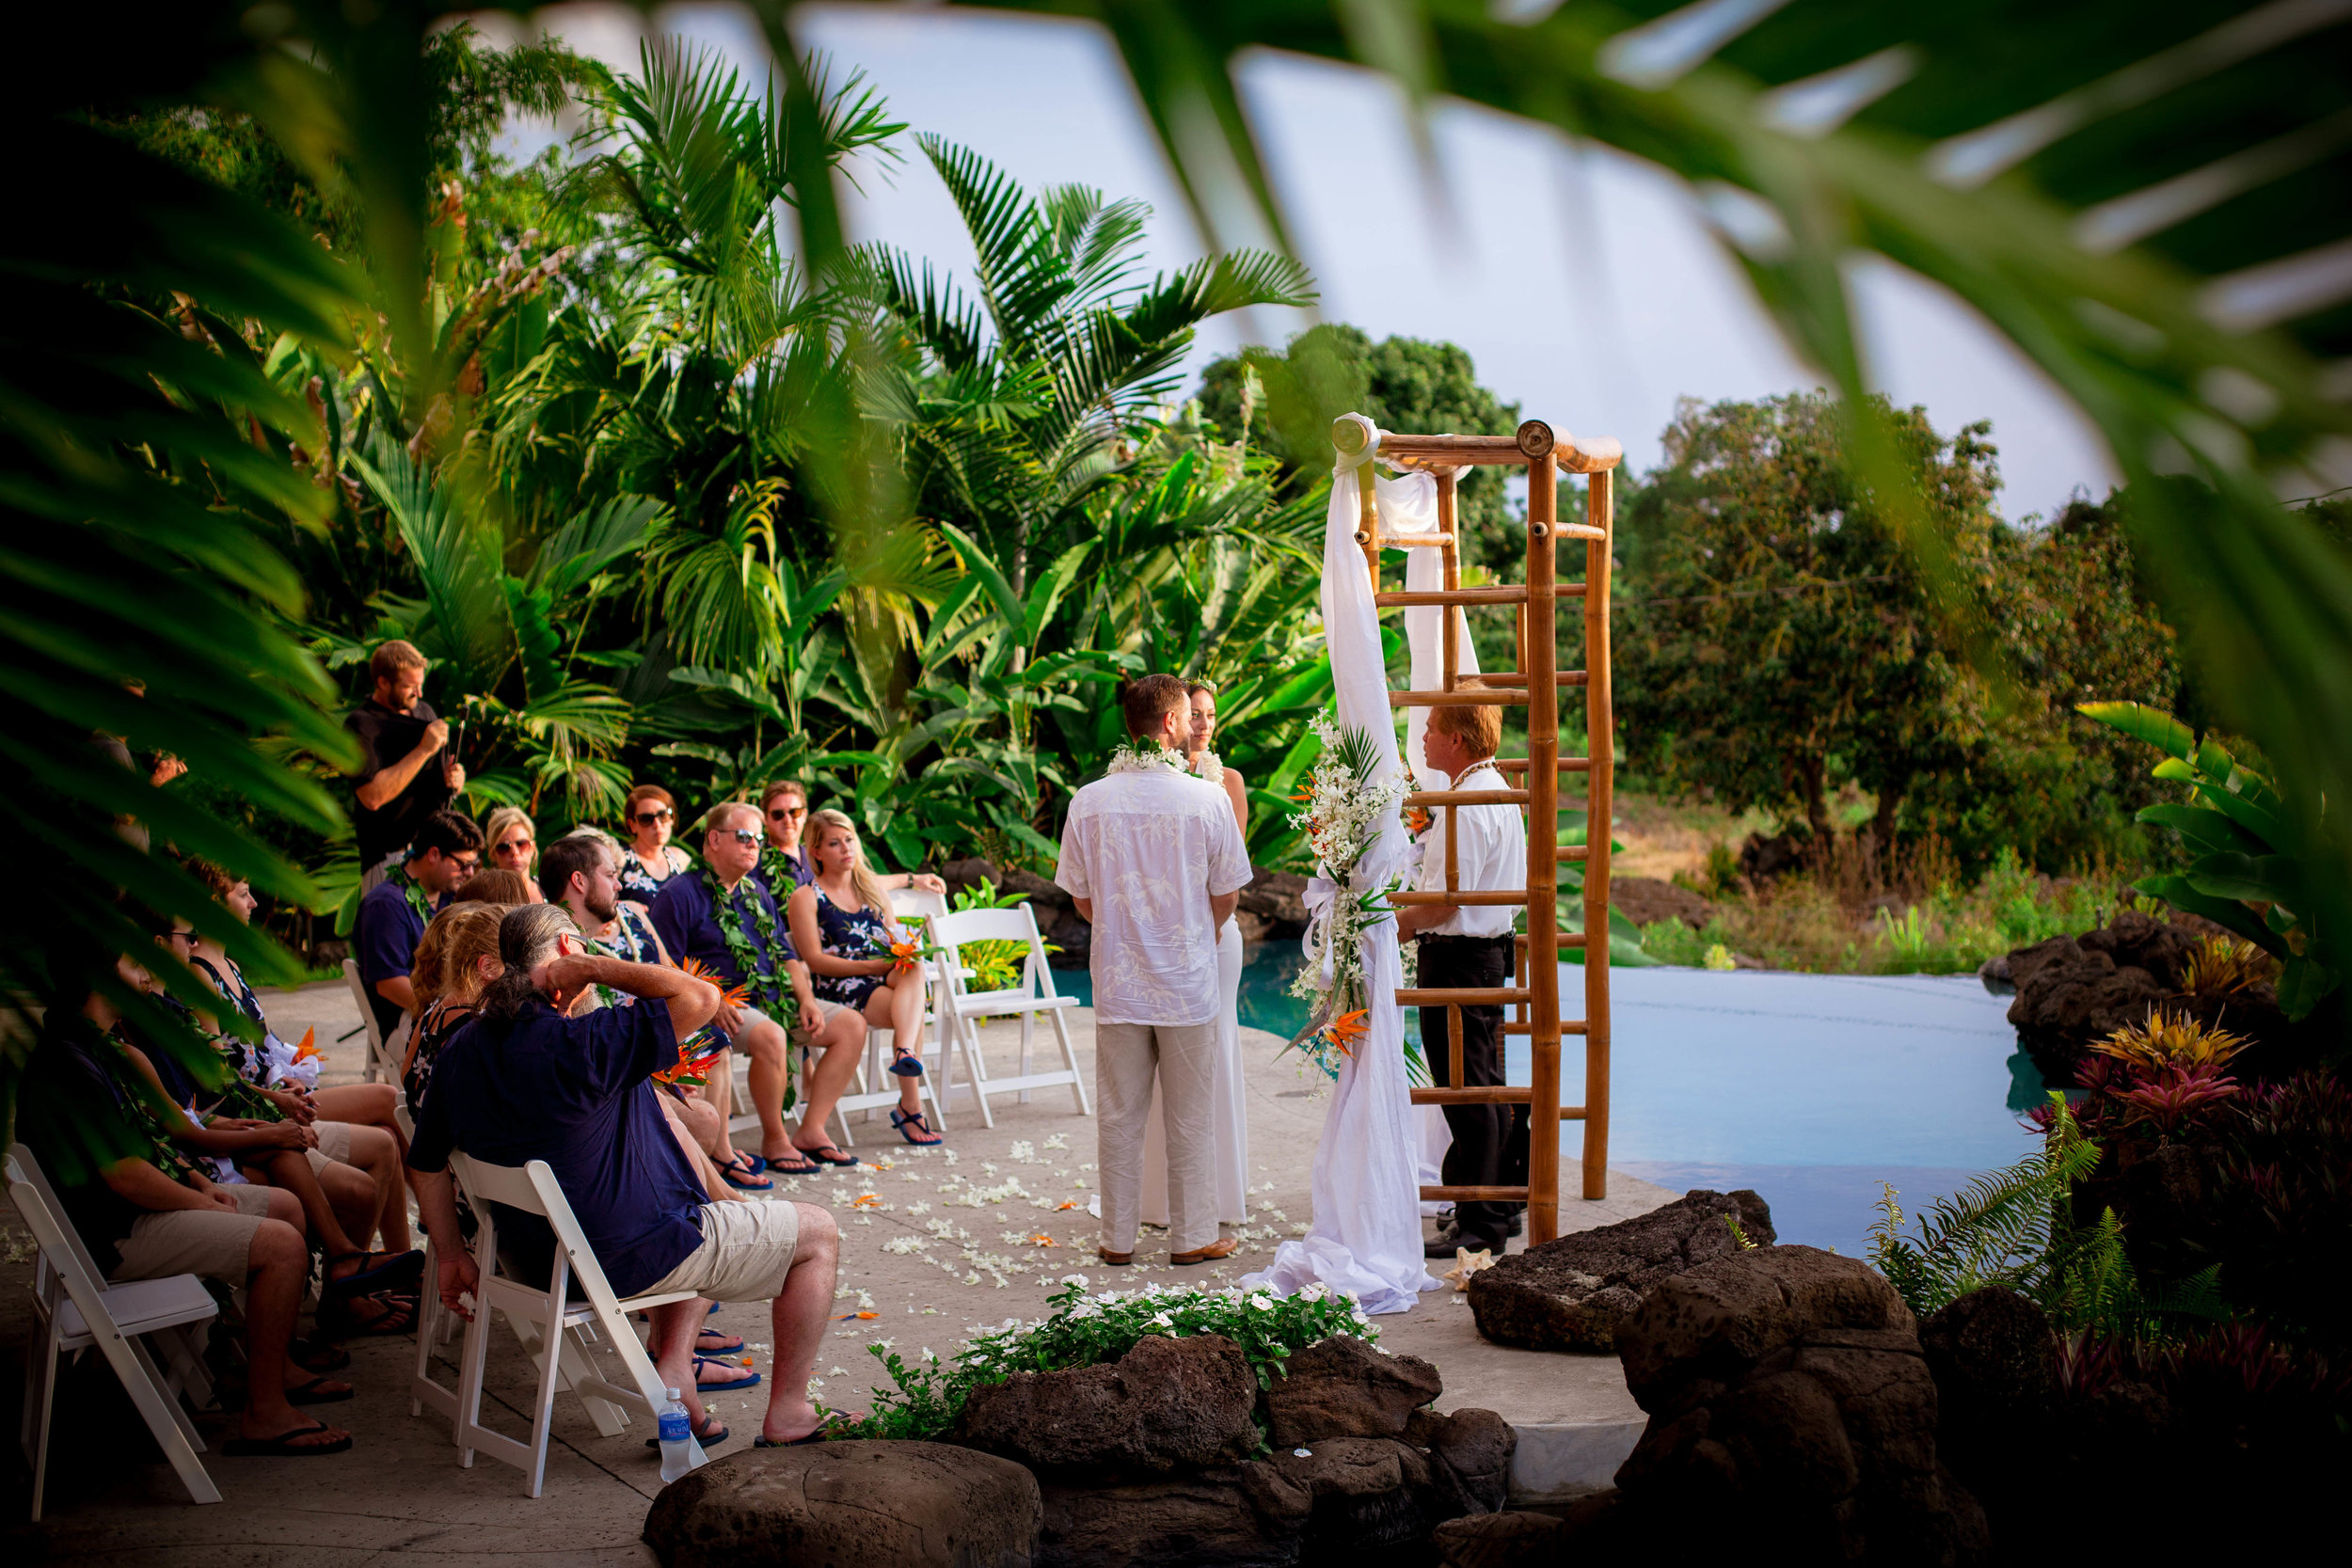 big island hawaii holualoa estate wedding 20160908175629-1kb.jpg